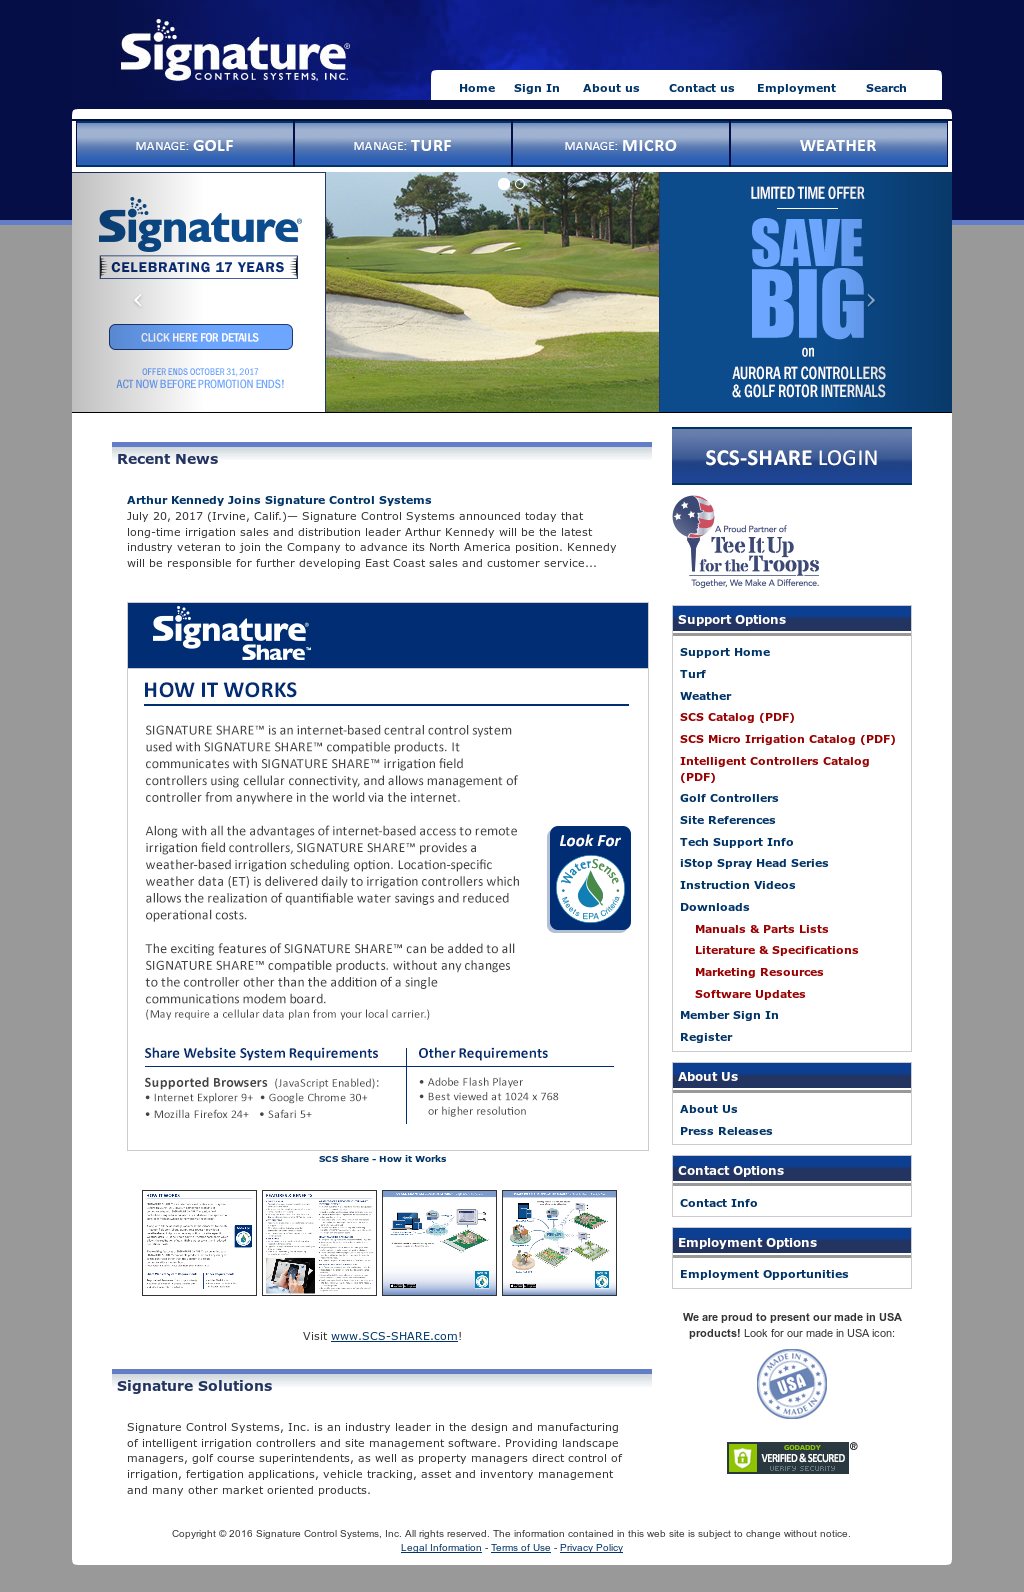 Signaturecontrolsystems Competitors, Revenue and Employees